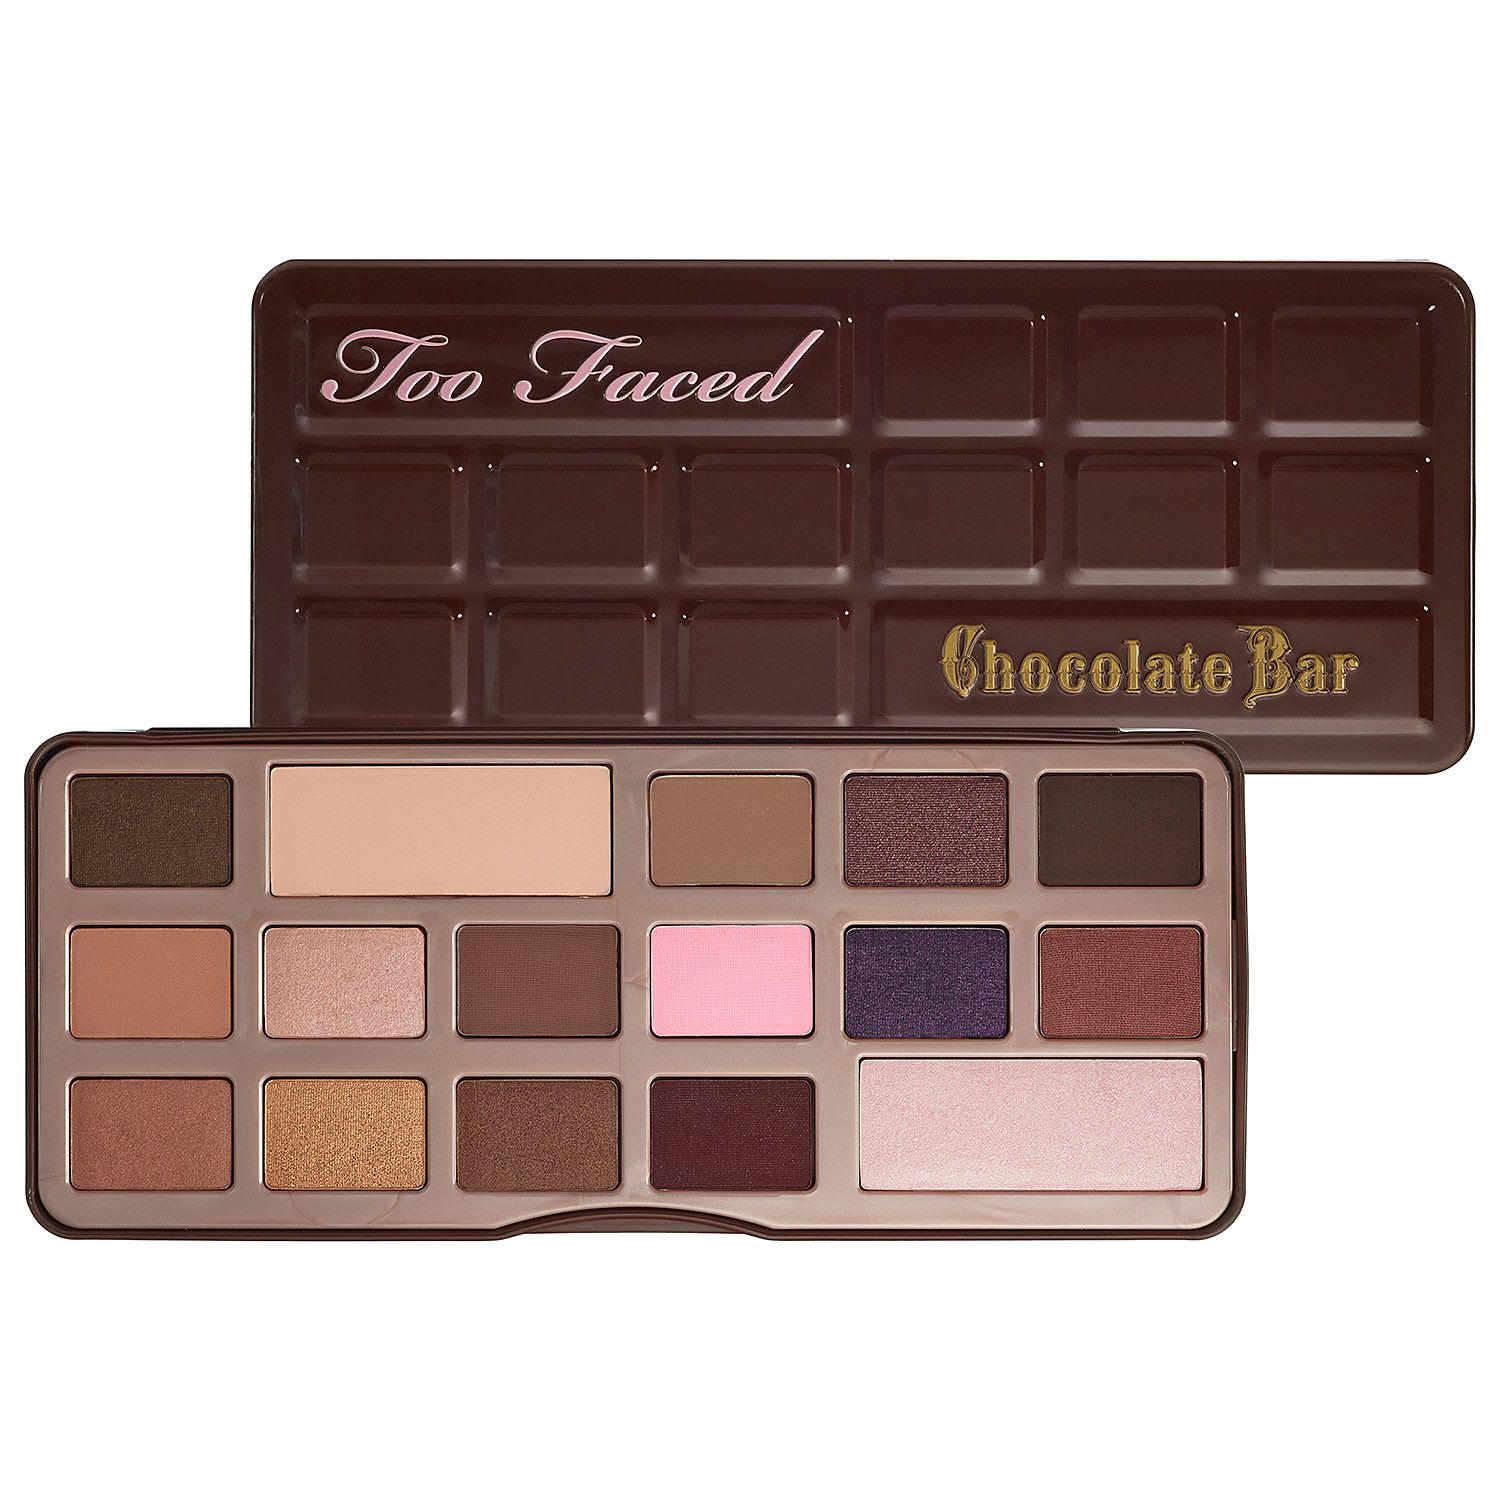 749e309113ff Too Faced The Chocolate Bar Eye Palette  Sephora  ValentinesDay  gifts   makeup  palettes  eyeshadow